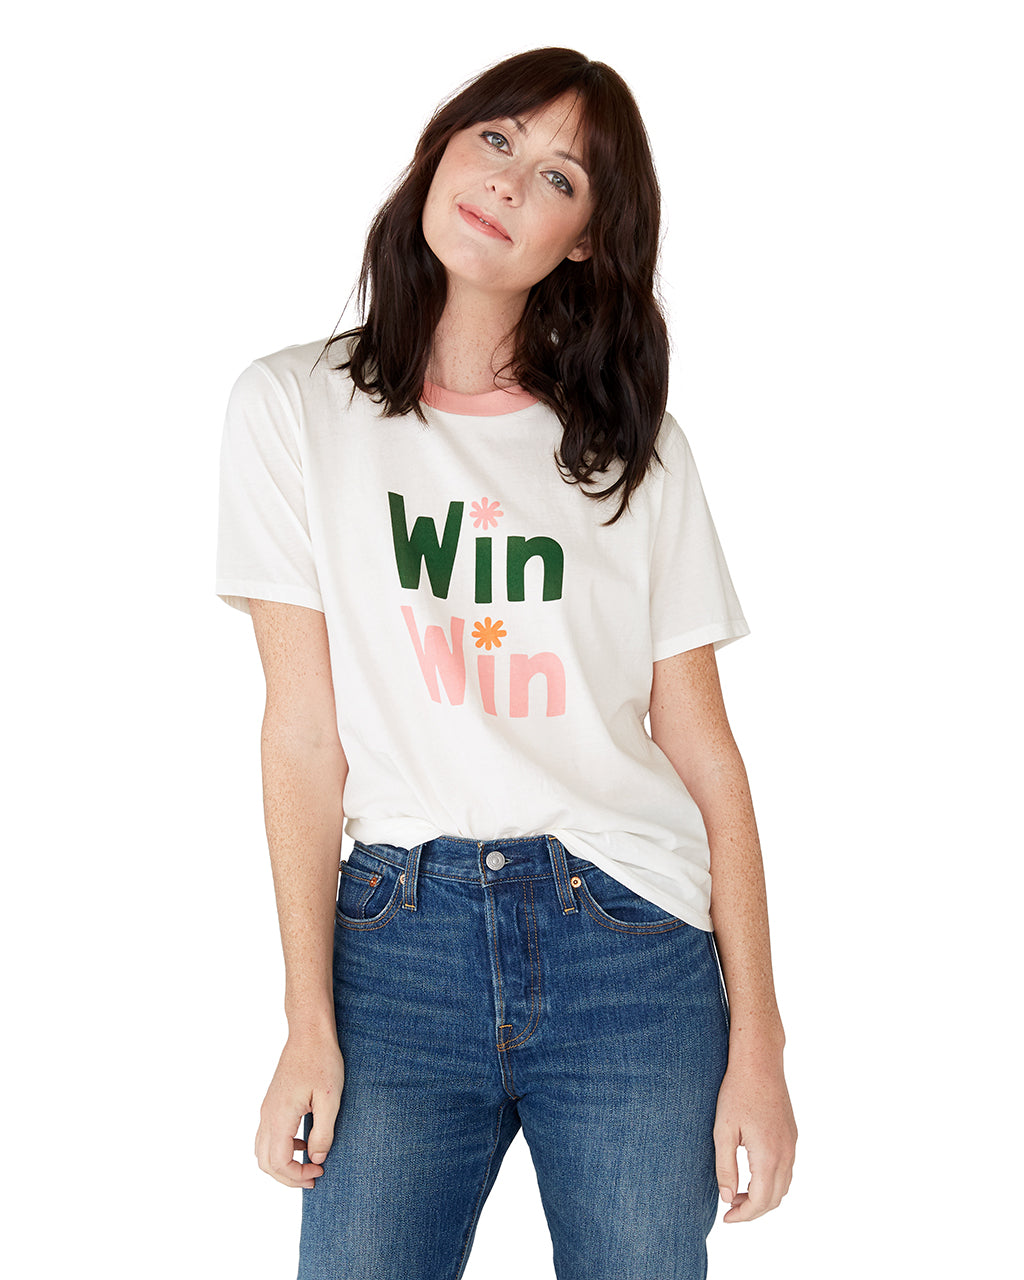 This tee comes in white, with pink ringer detail and 'Win Win' printed in pink and green on the front.